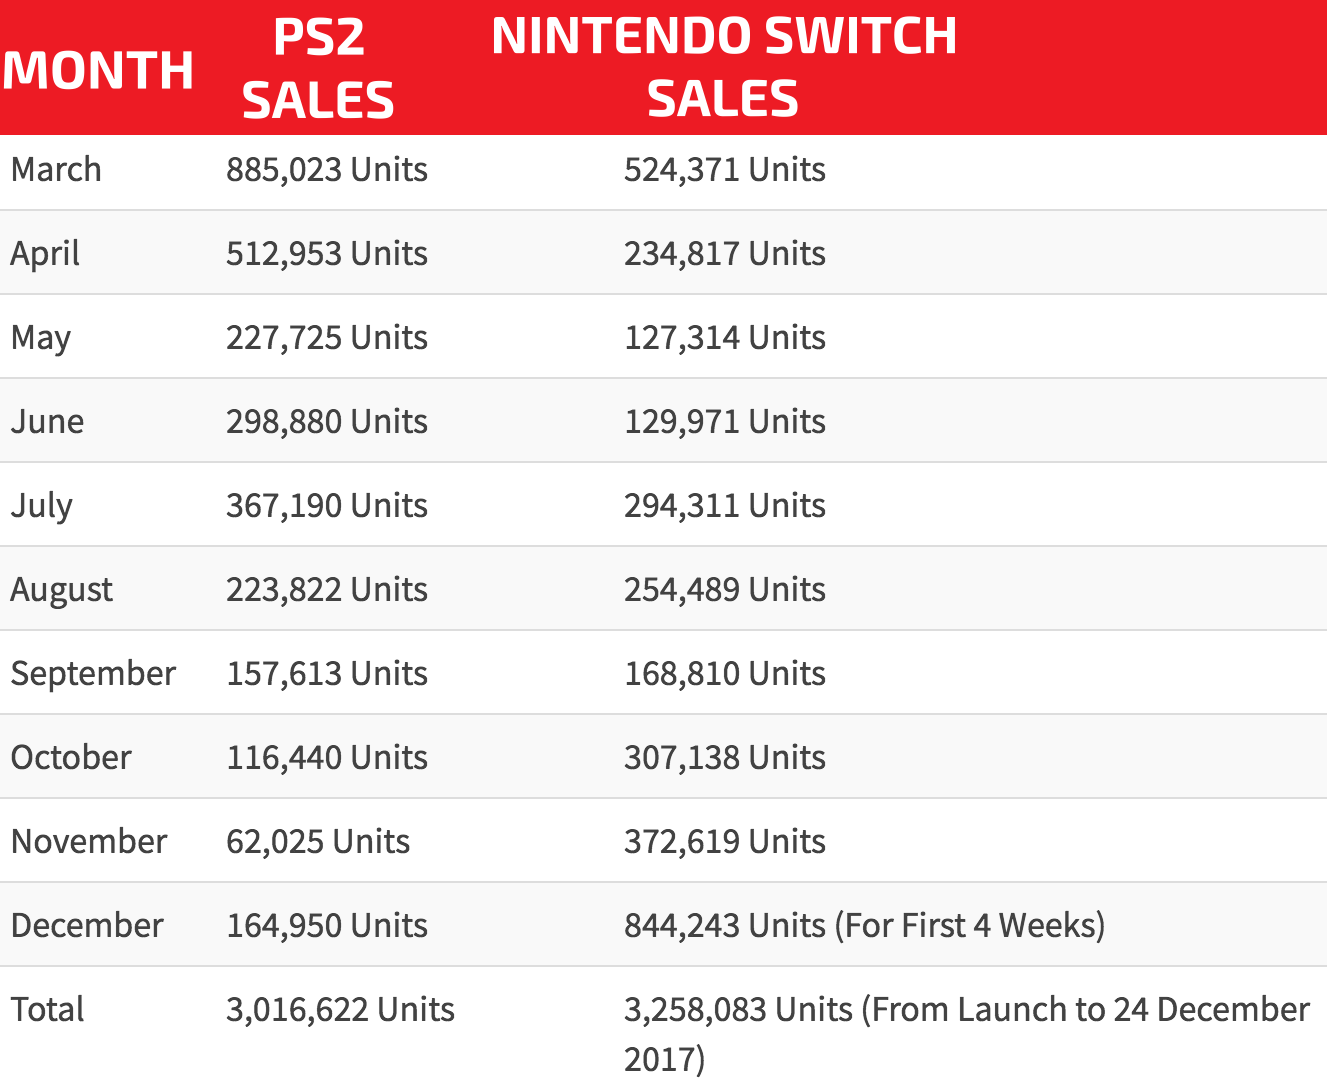 Nintendo Switch surpasses PS2's first 10-month sales numbers in Japan